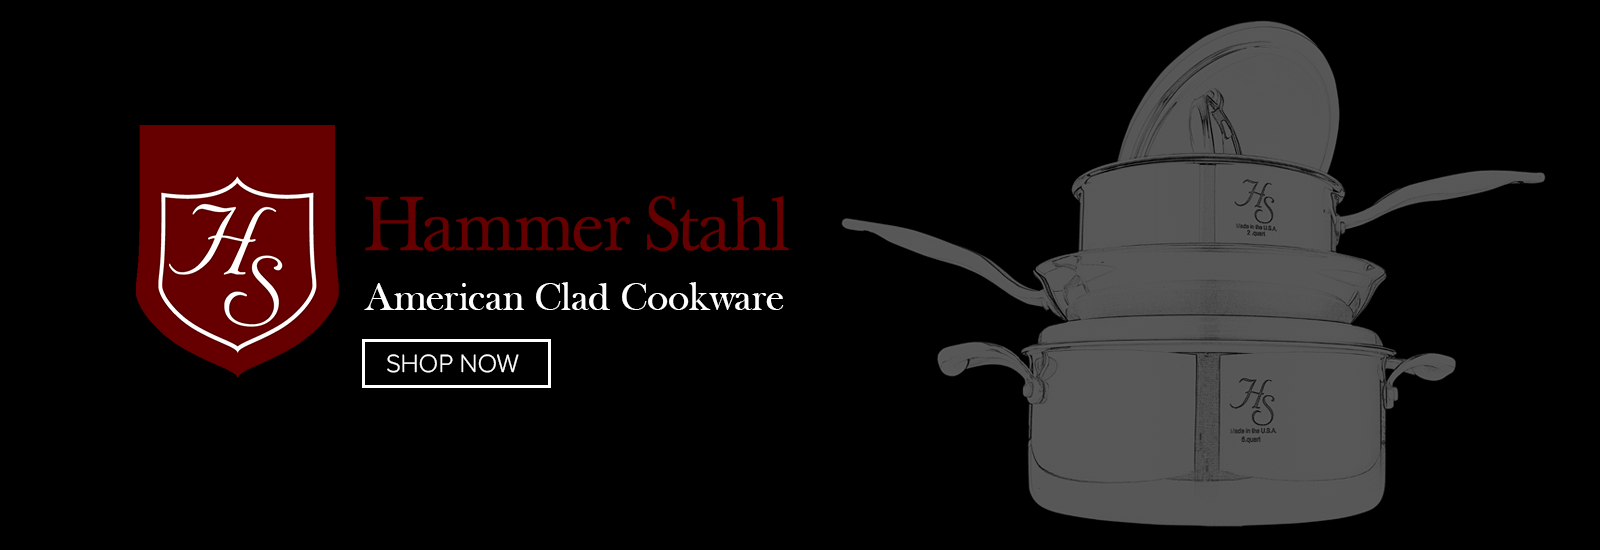 Hammer Stahl American Clad Cookware